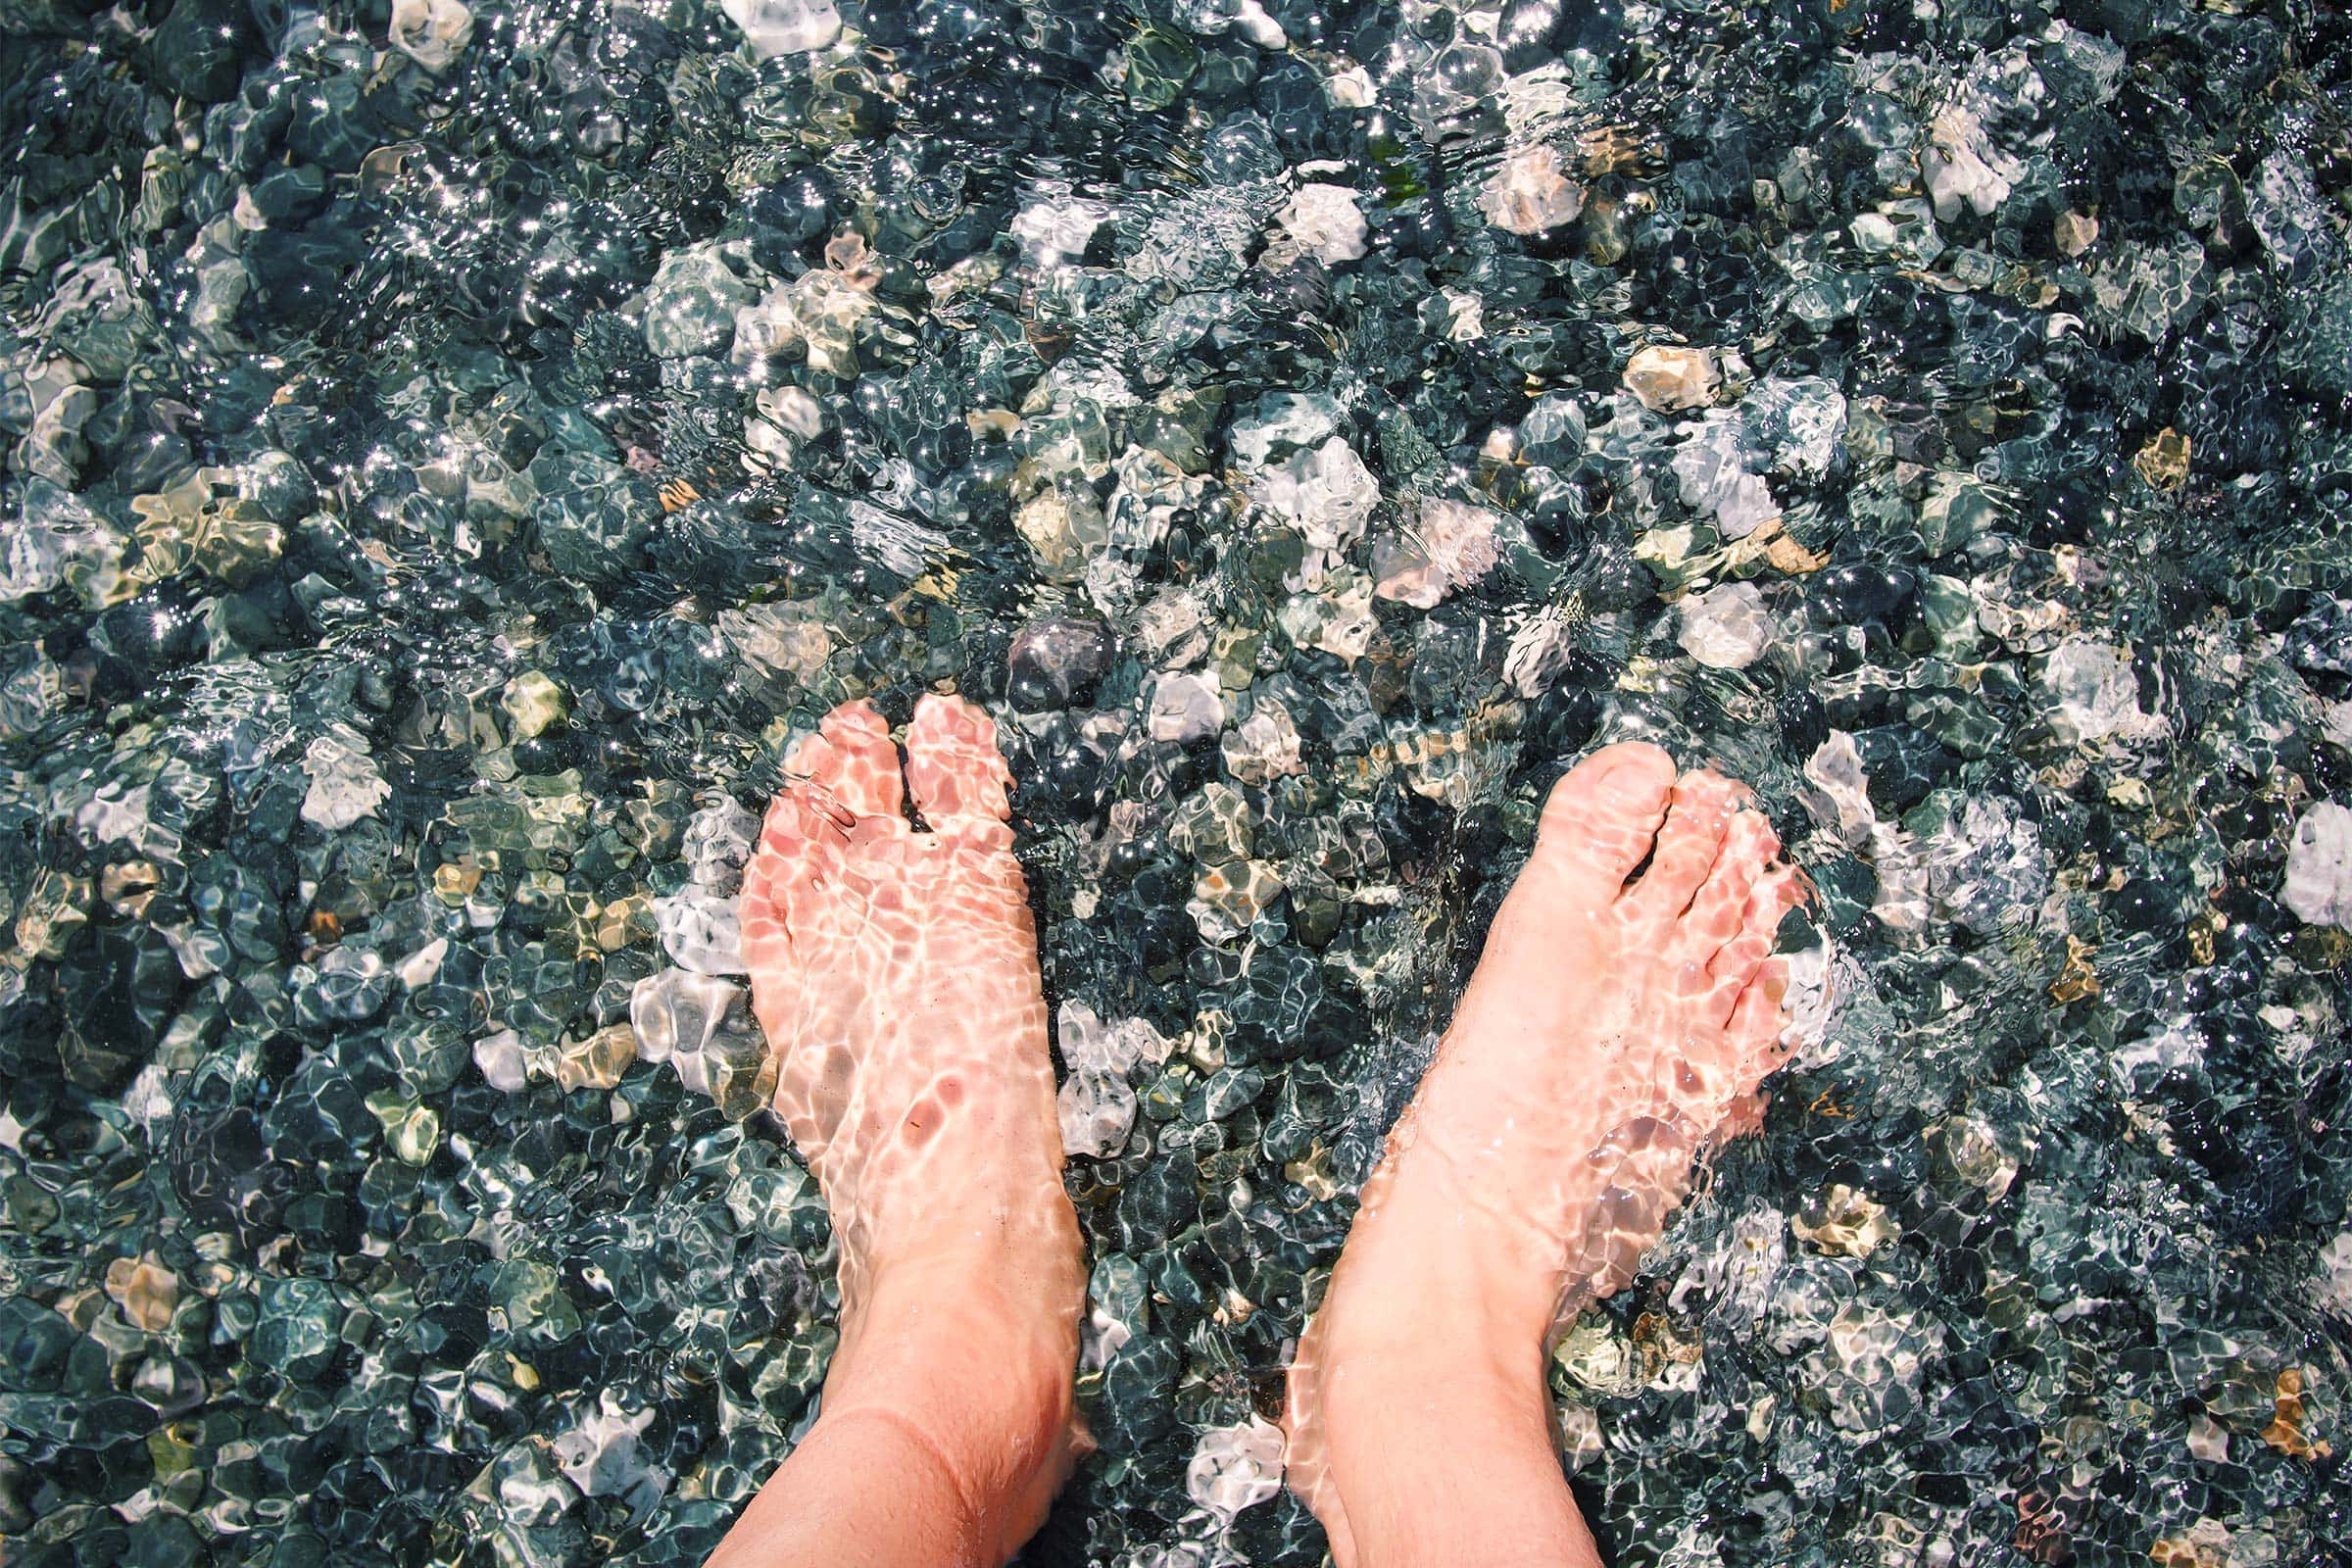 feet bathing in cold water filled with round stones